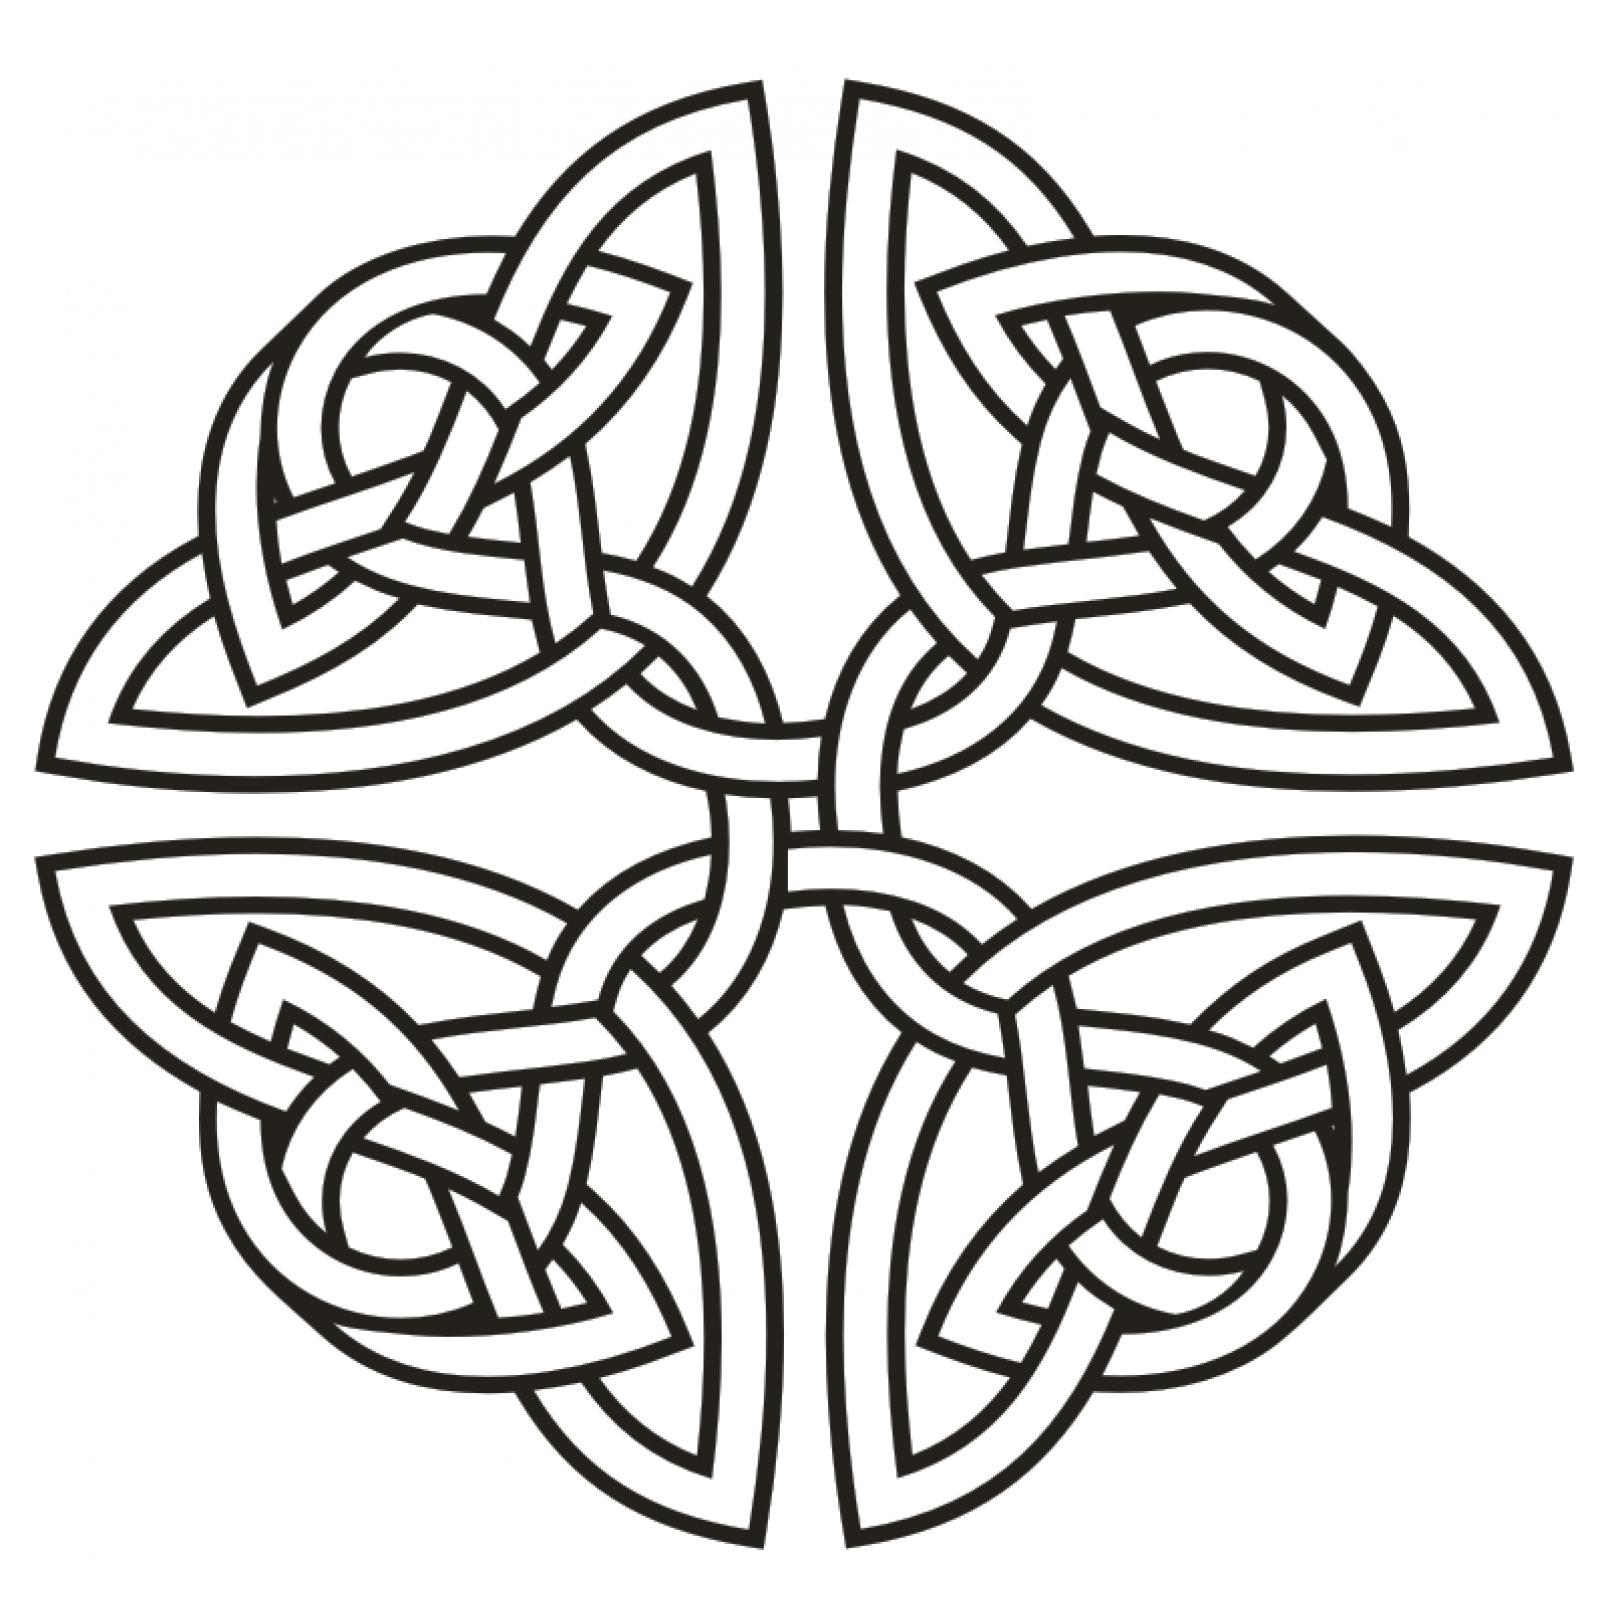 aufkleber celtic ornamente keltische zeichen symbole keltisch sticker auto15 ebay. Black Bedroom Furniture Sets. Home Design Ideas